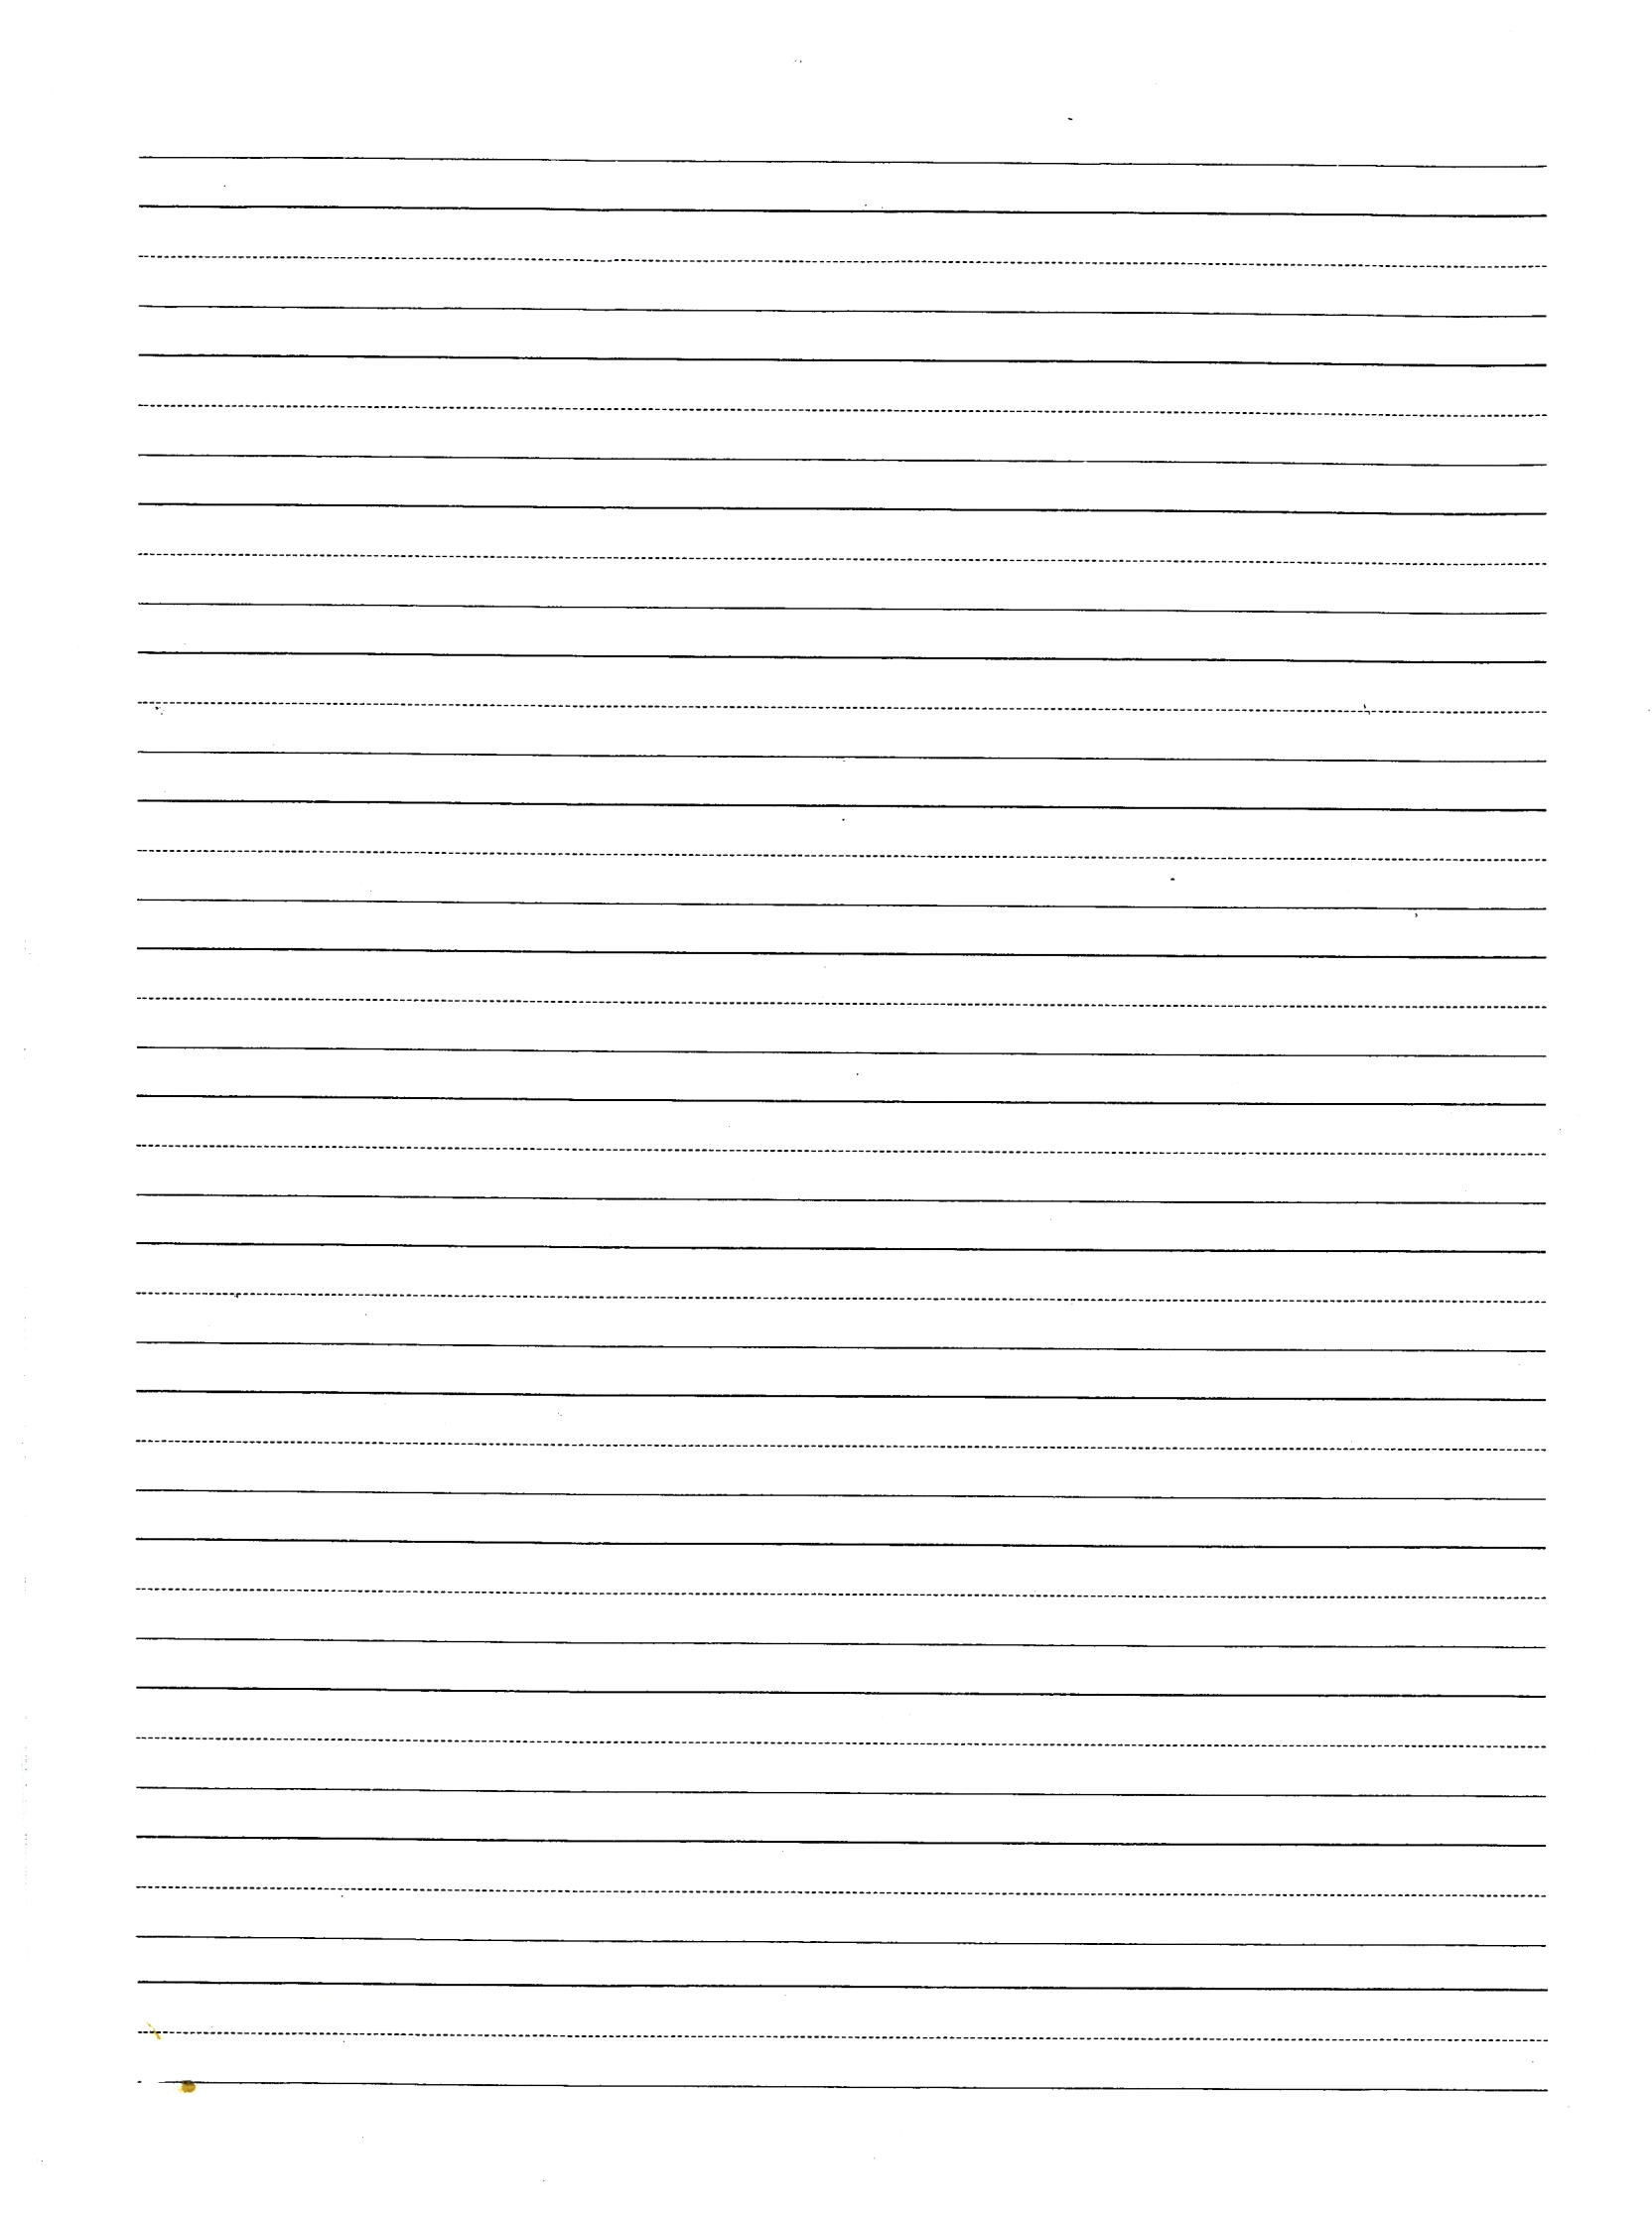 Beginning Writer Lined Paper